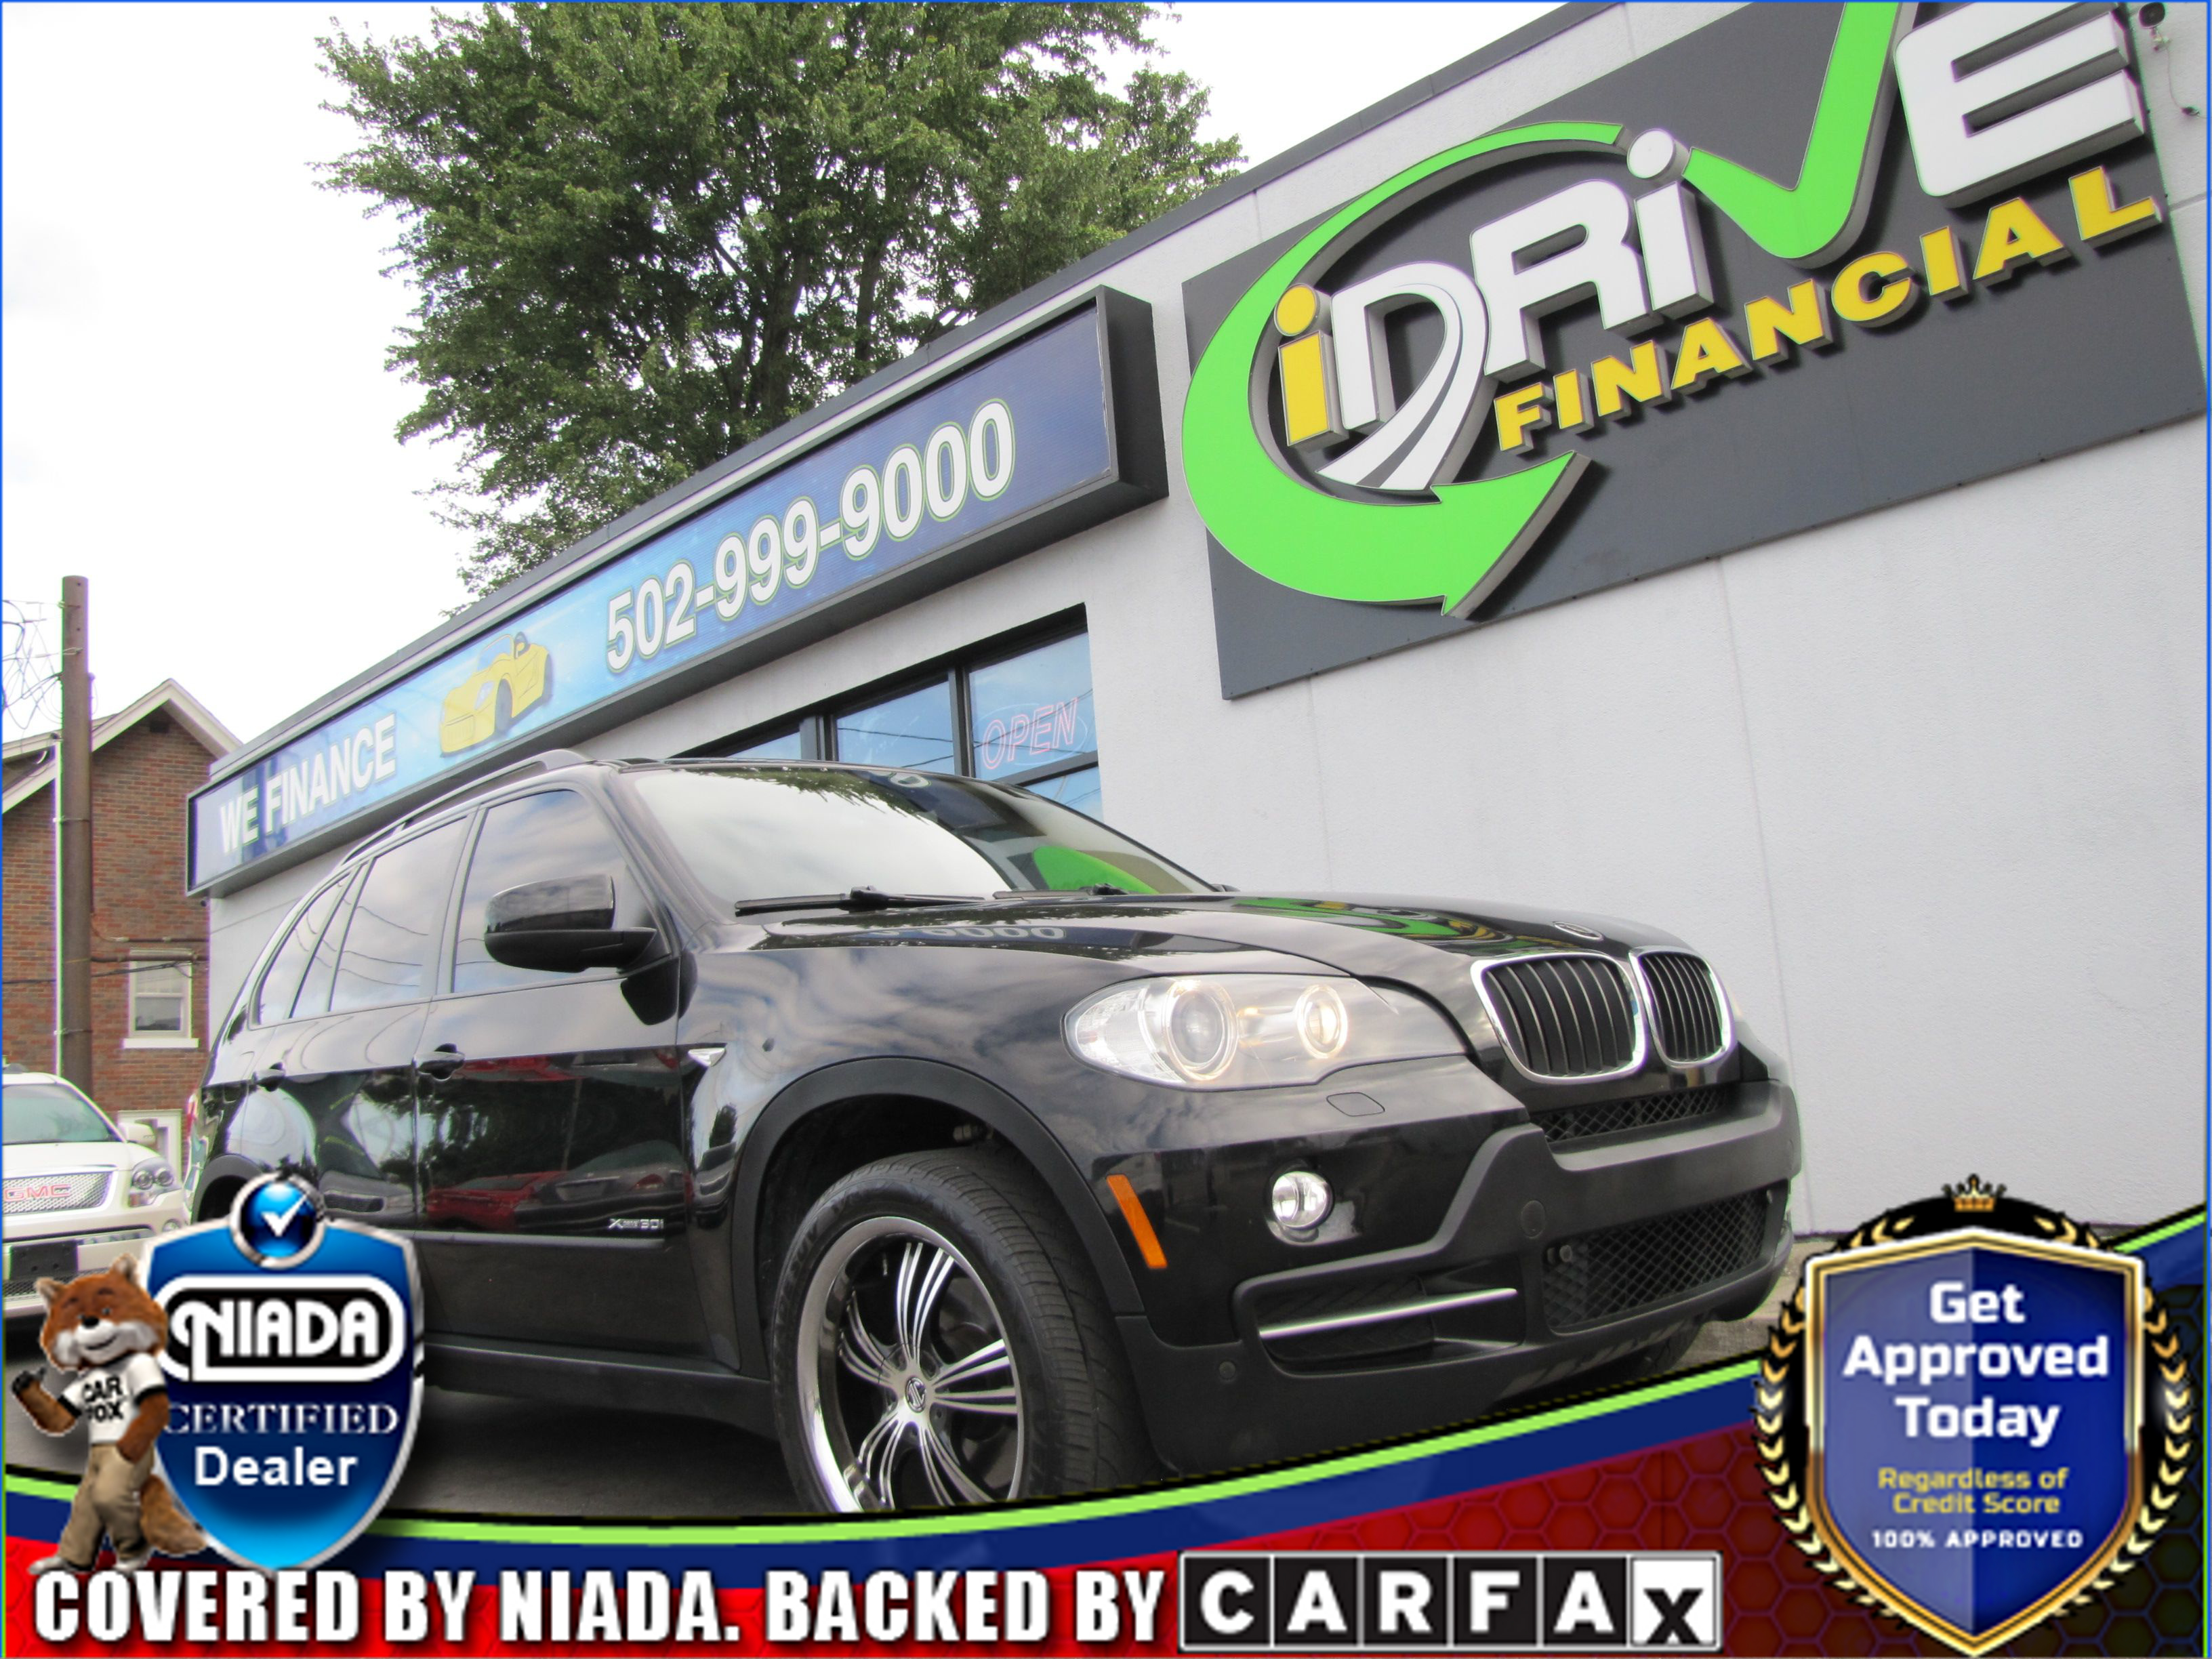 Carfax Used Cars Louisville Ky Luxury Used Cars for Sale In Frankfort Ky Automall